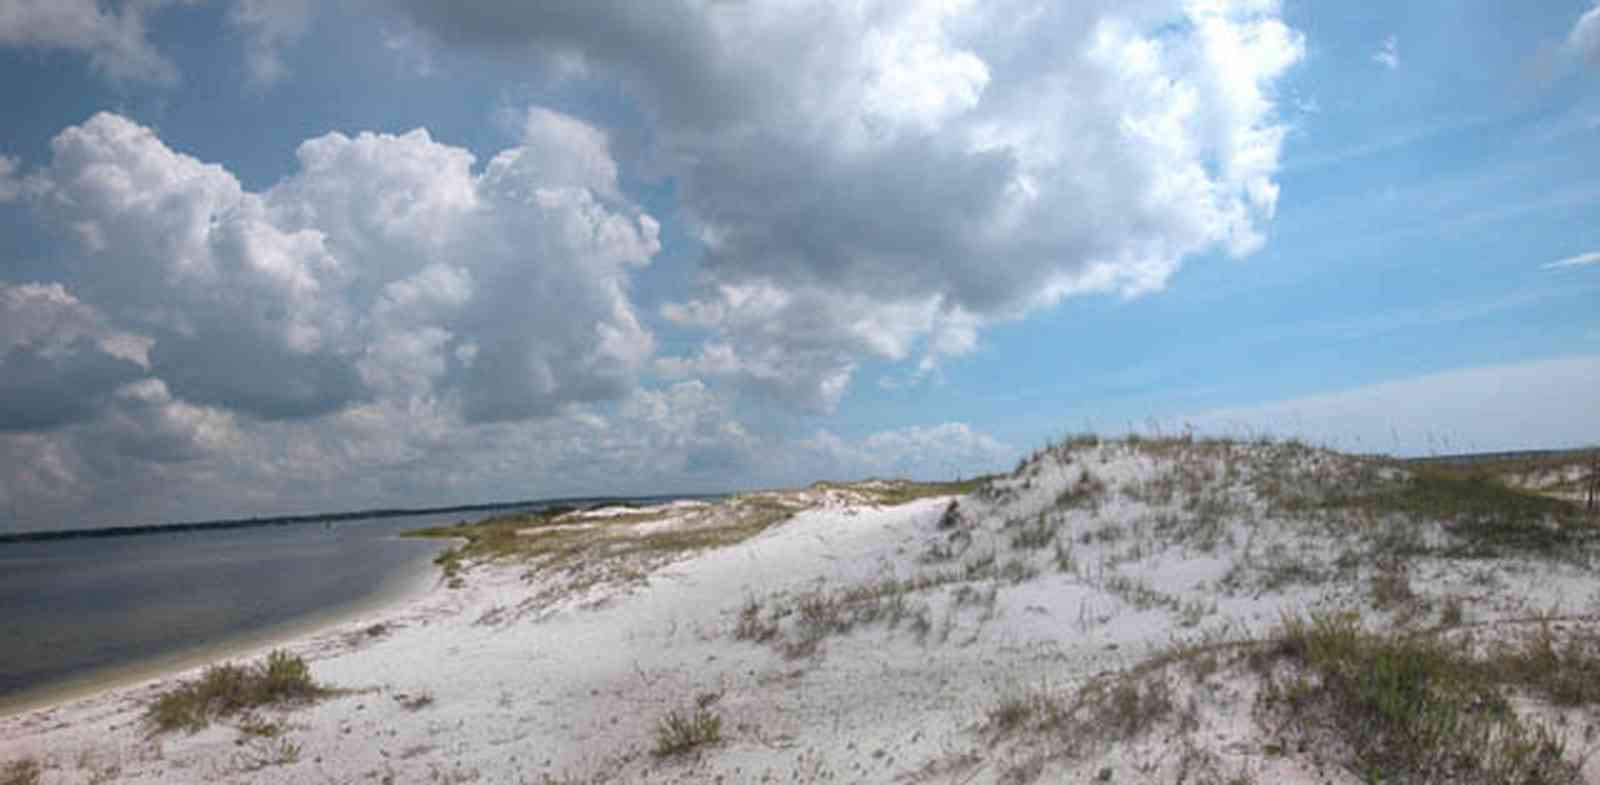 Gulf-Islands-National-Seashore:-Perdido-Key:-Boardwalk-I_02.jpg:  sand dunes, cumulus clouds, sea oats, barrier island, national park, quartz sand